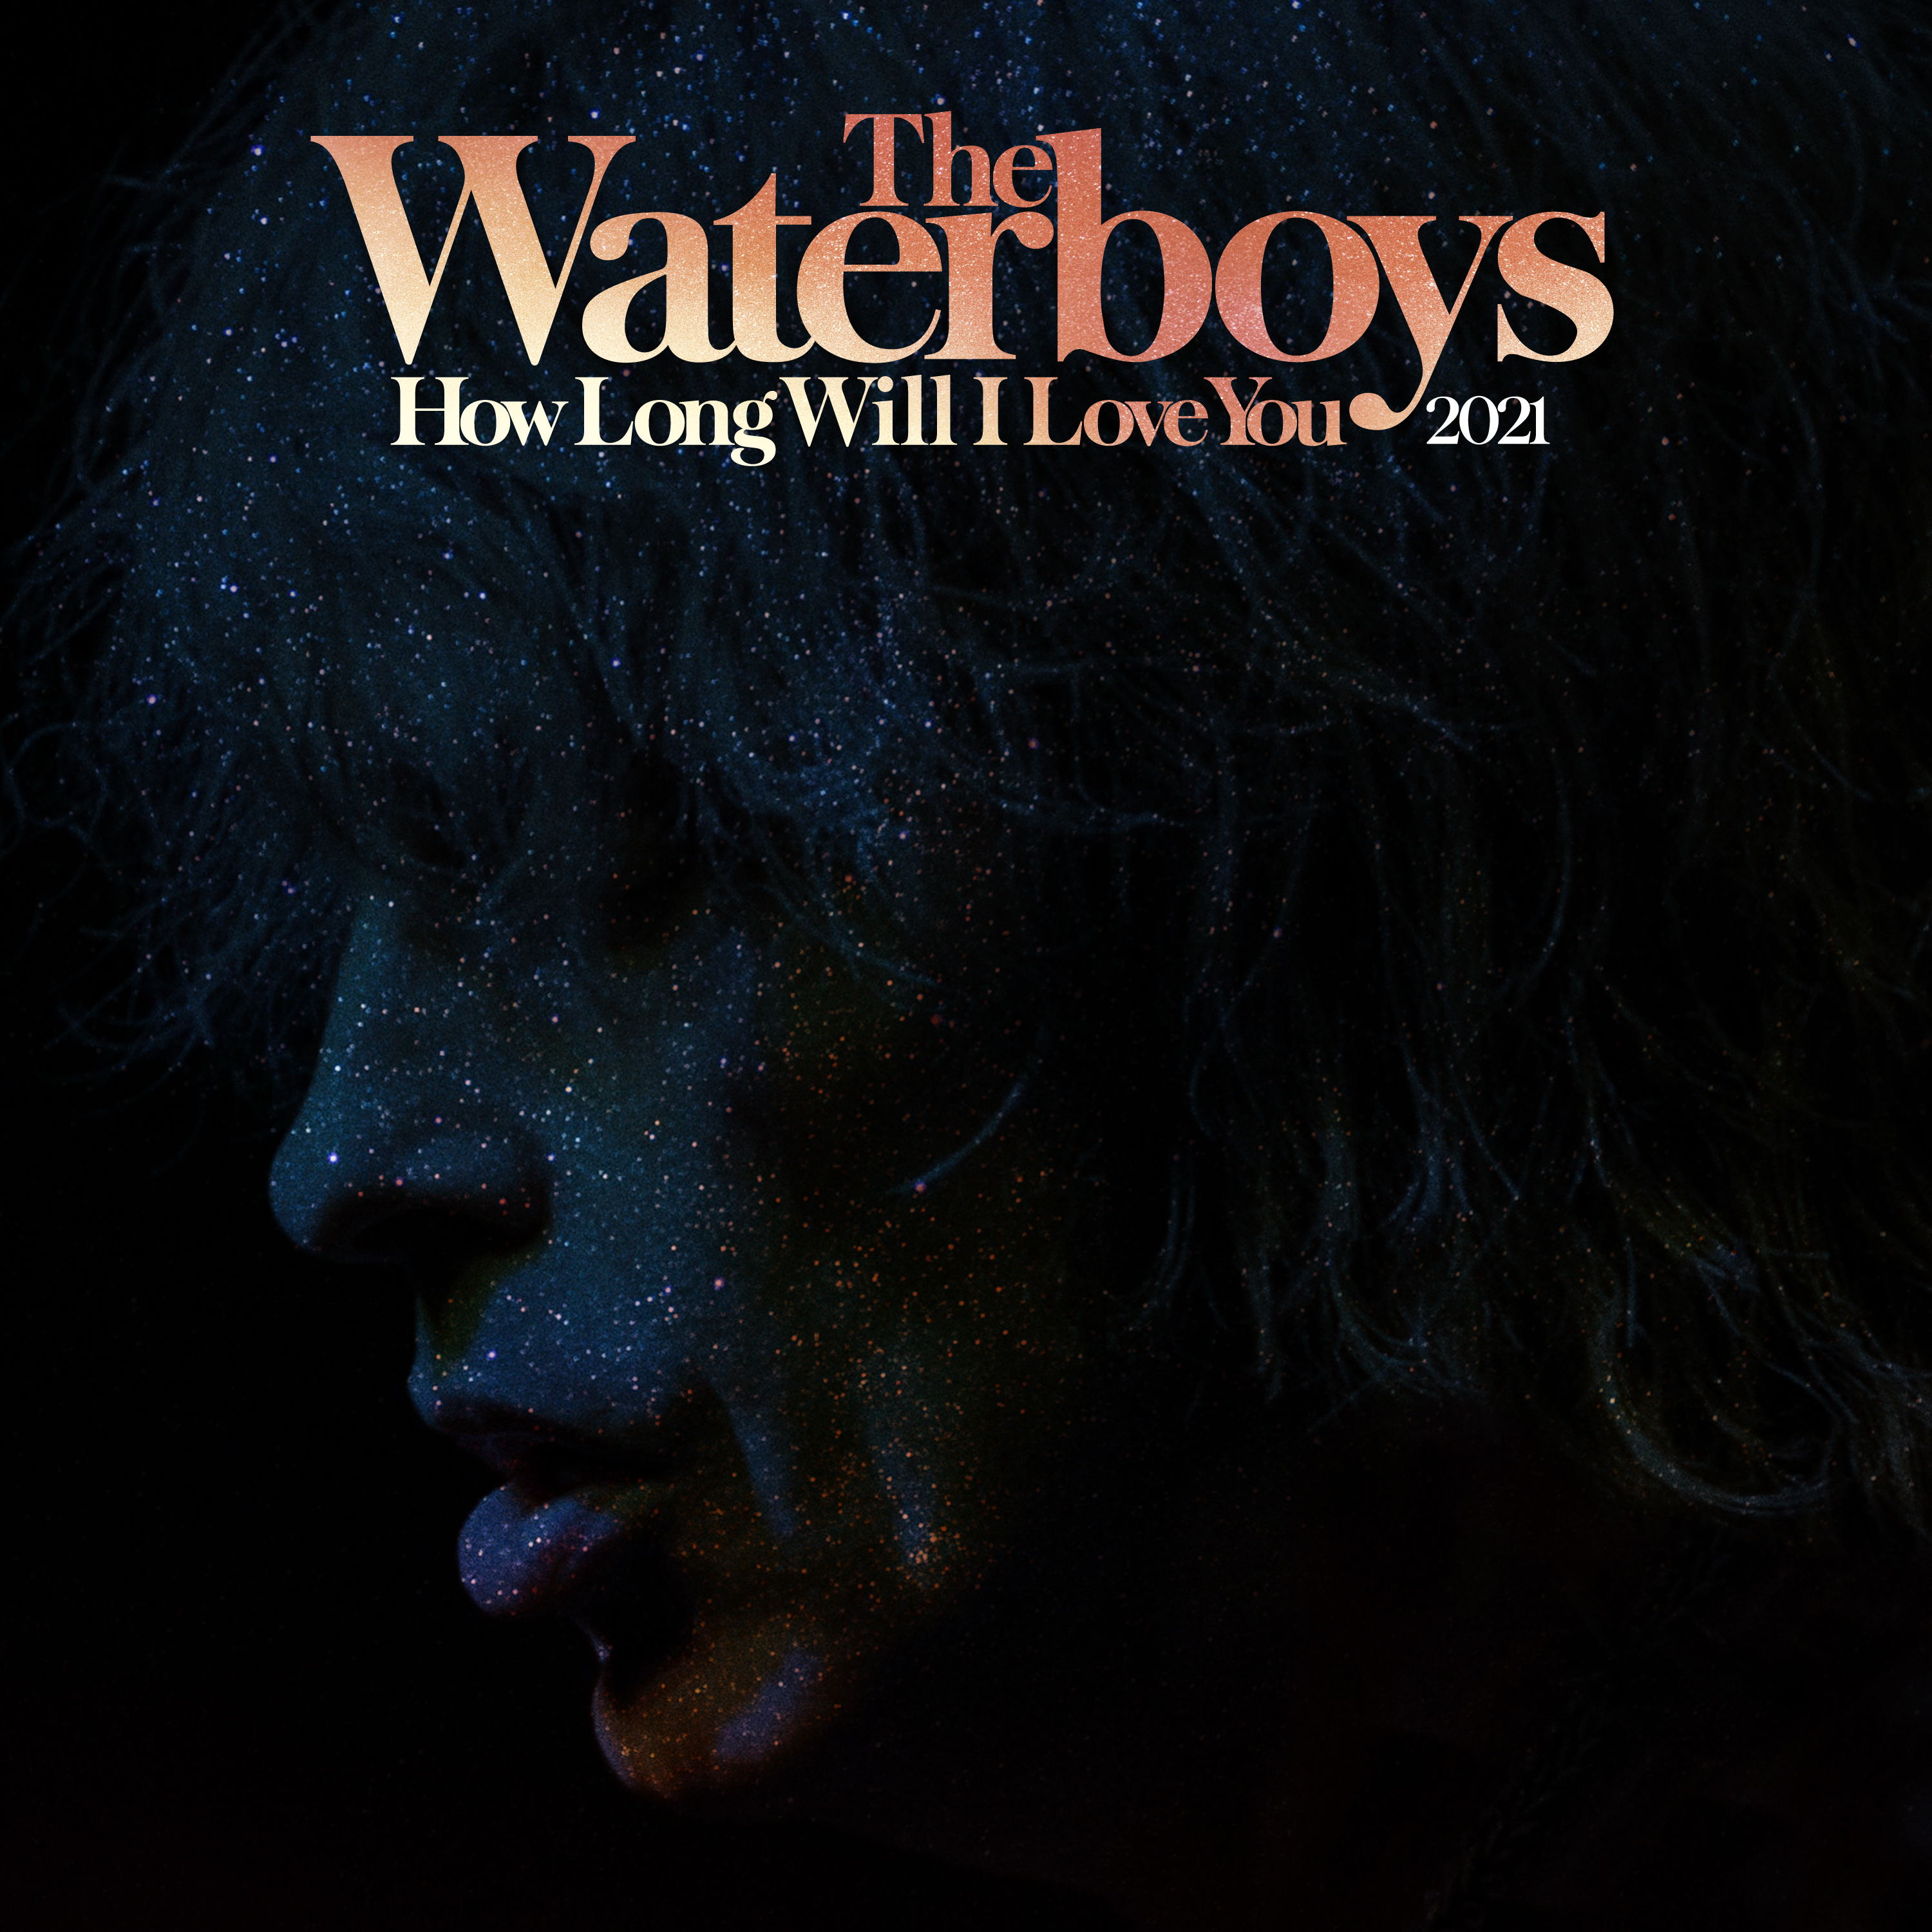 Waterboys - How Long Will I Love You (2021 Remix) [RSD Drops 2021]